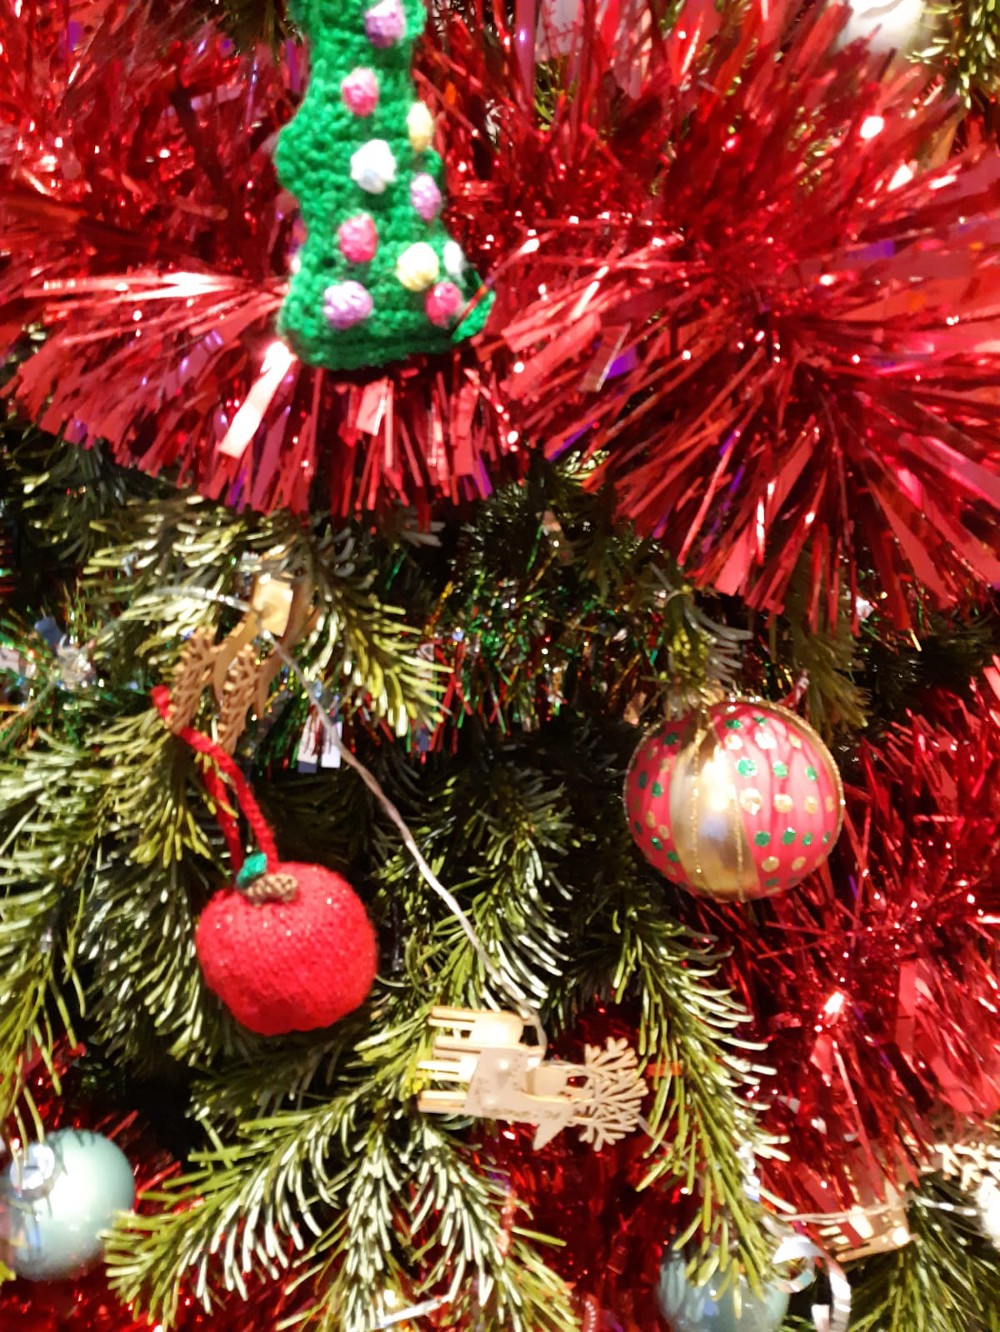 A close up of tinsel on a Christmas tree